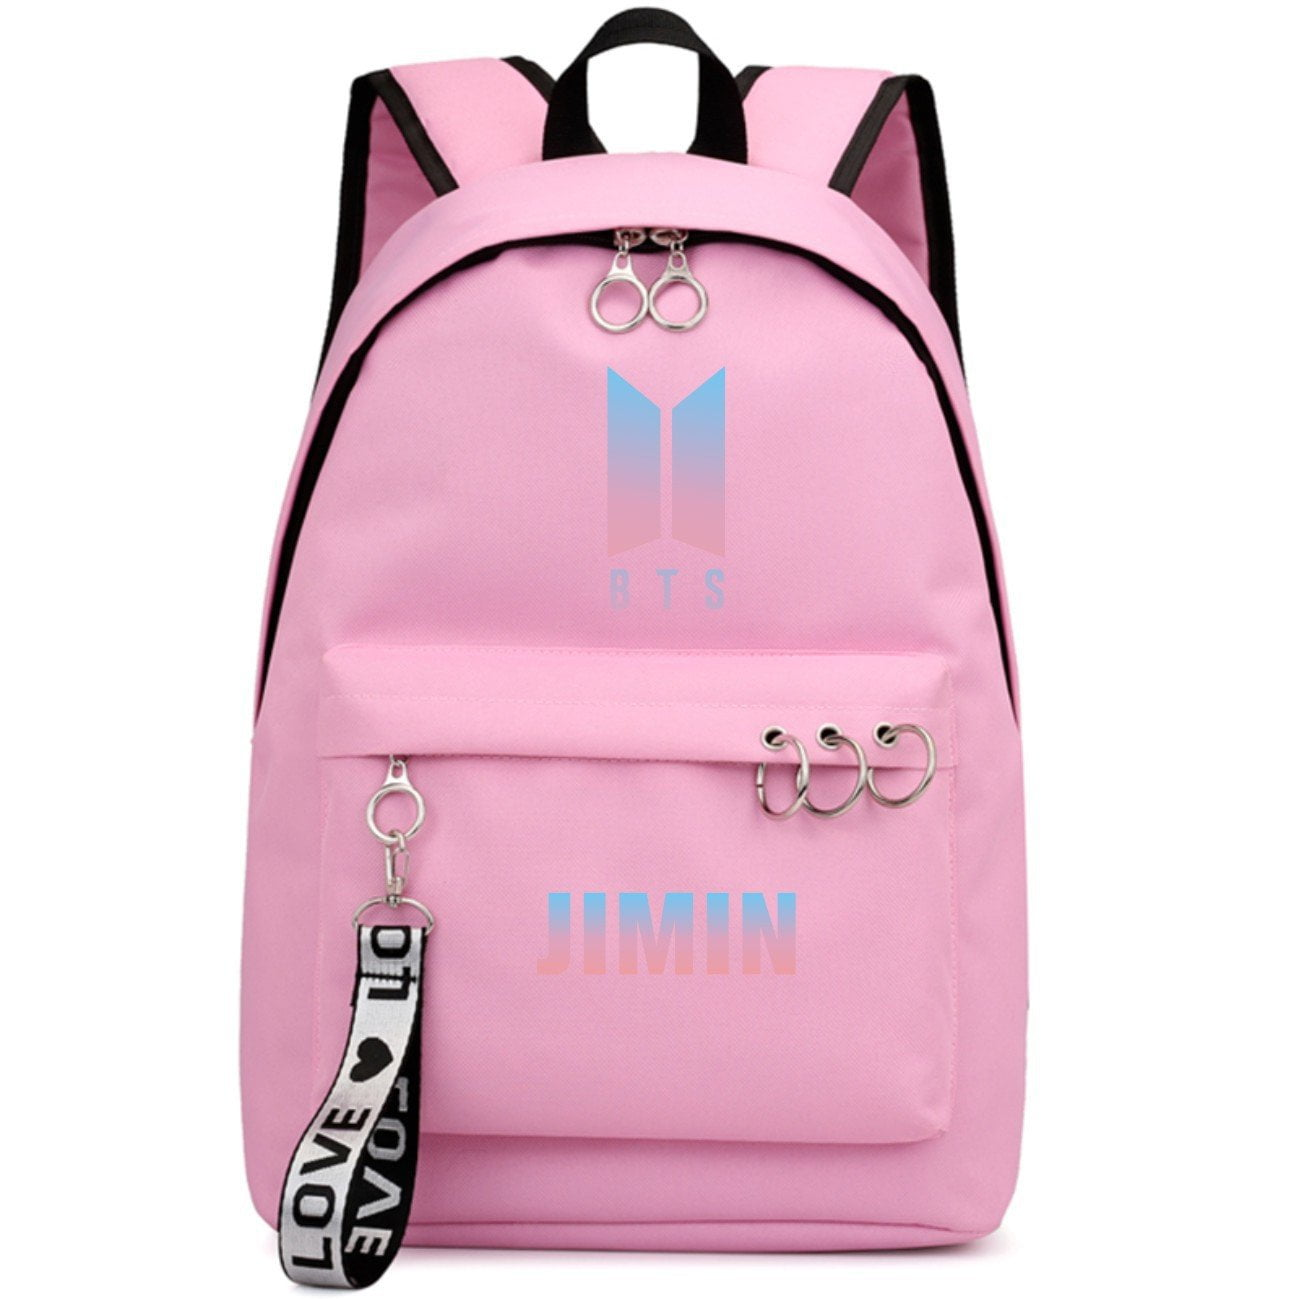 BTS New Logo Large Capacity Backpack / School Bag with Silver Rings in 2 Colours  583071224455#3925845045037